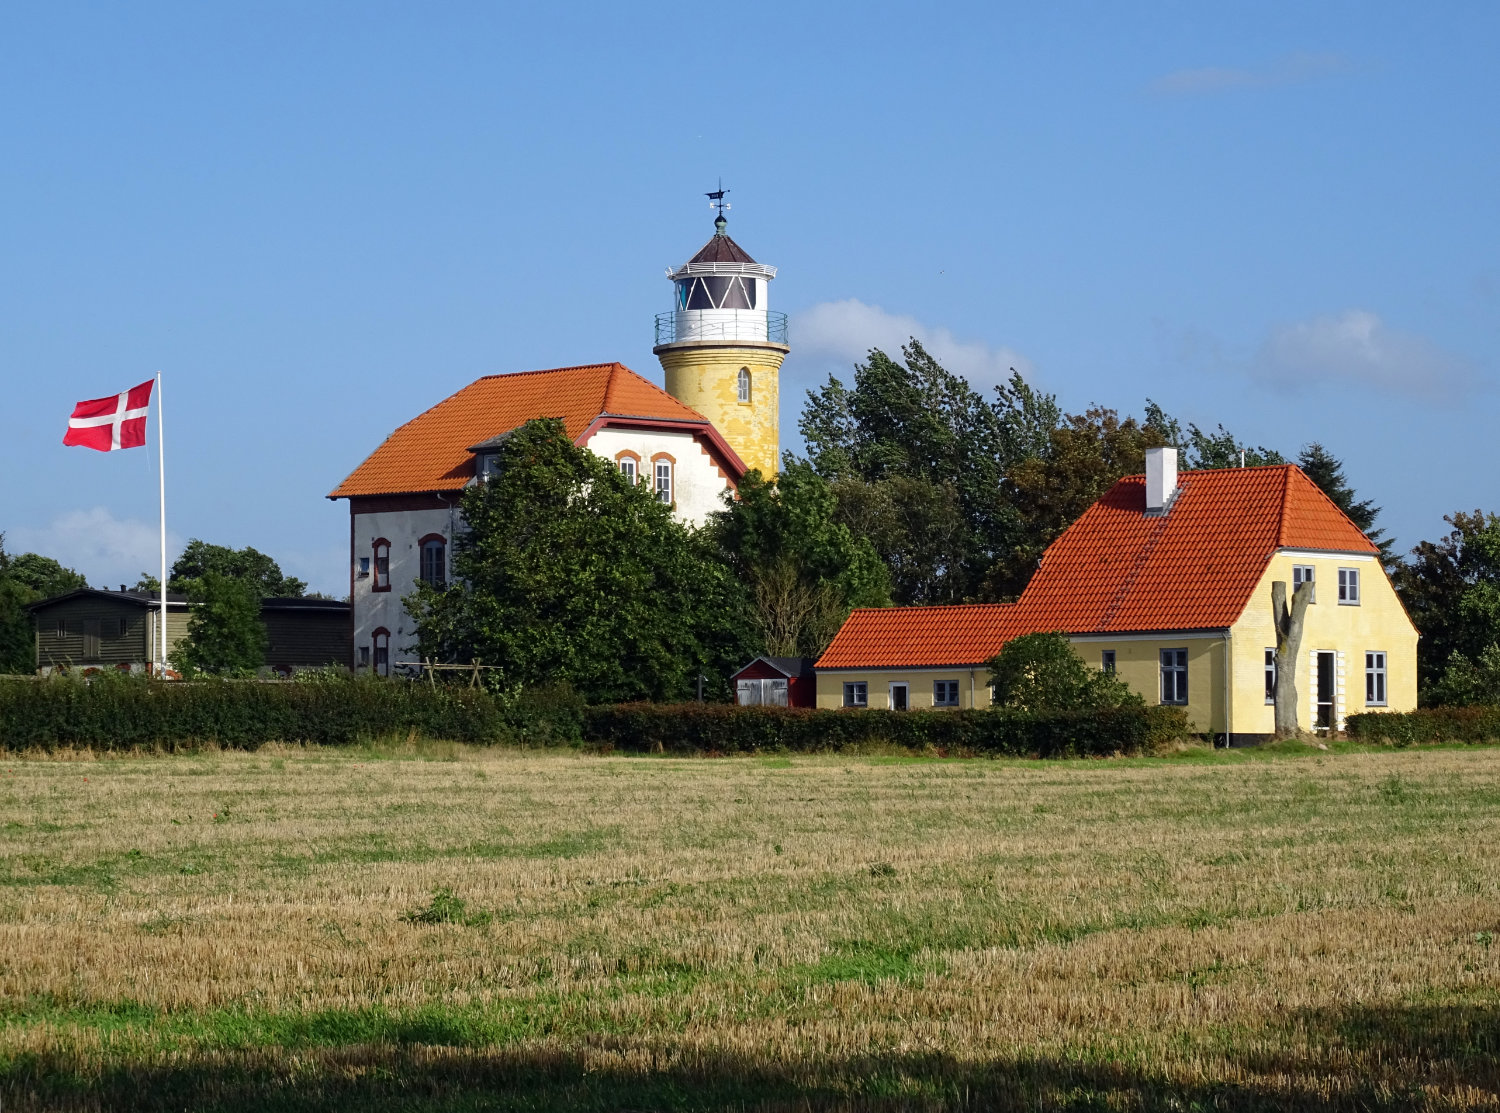 Augustenhof lighthouse